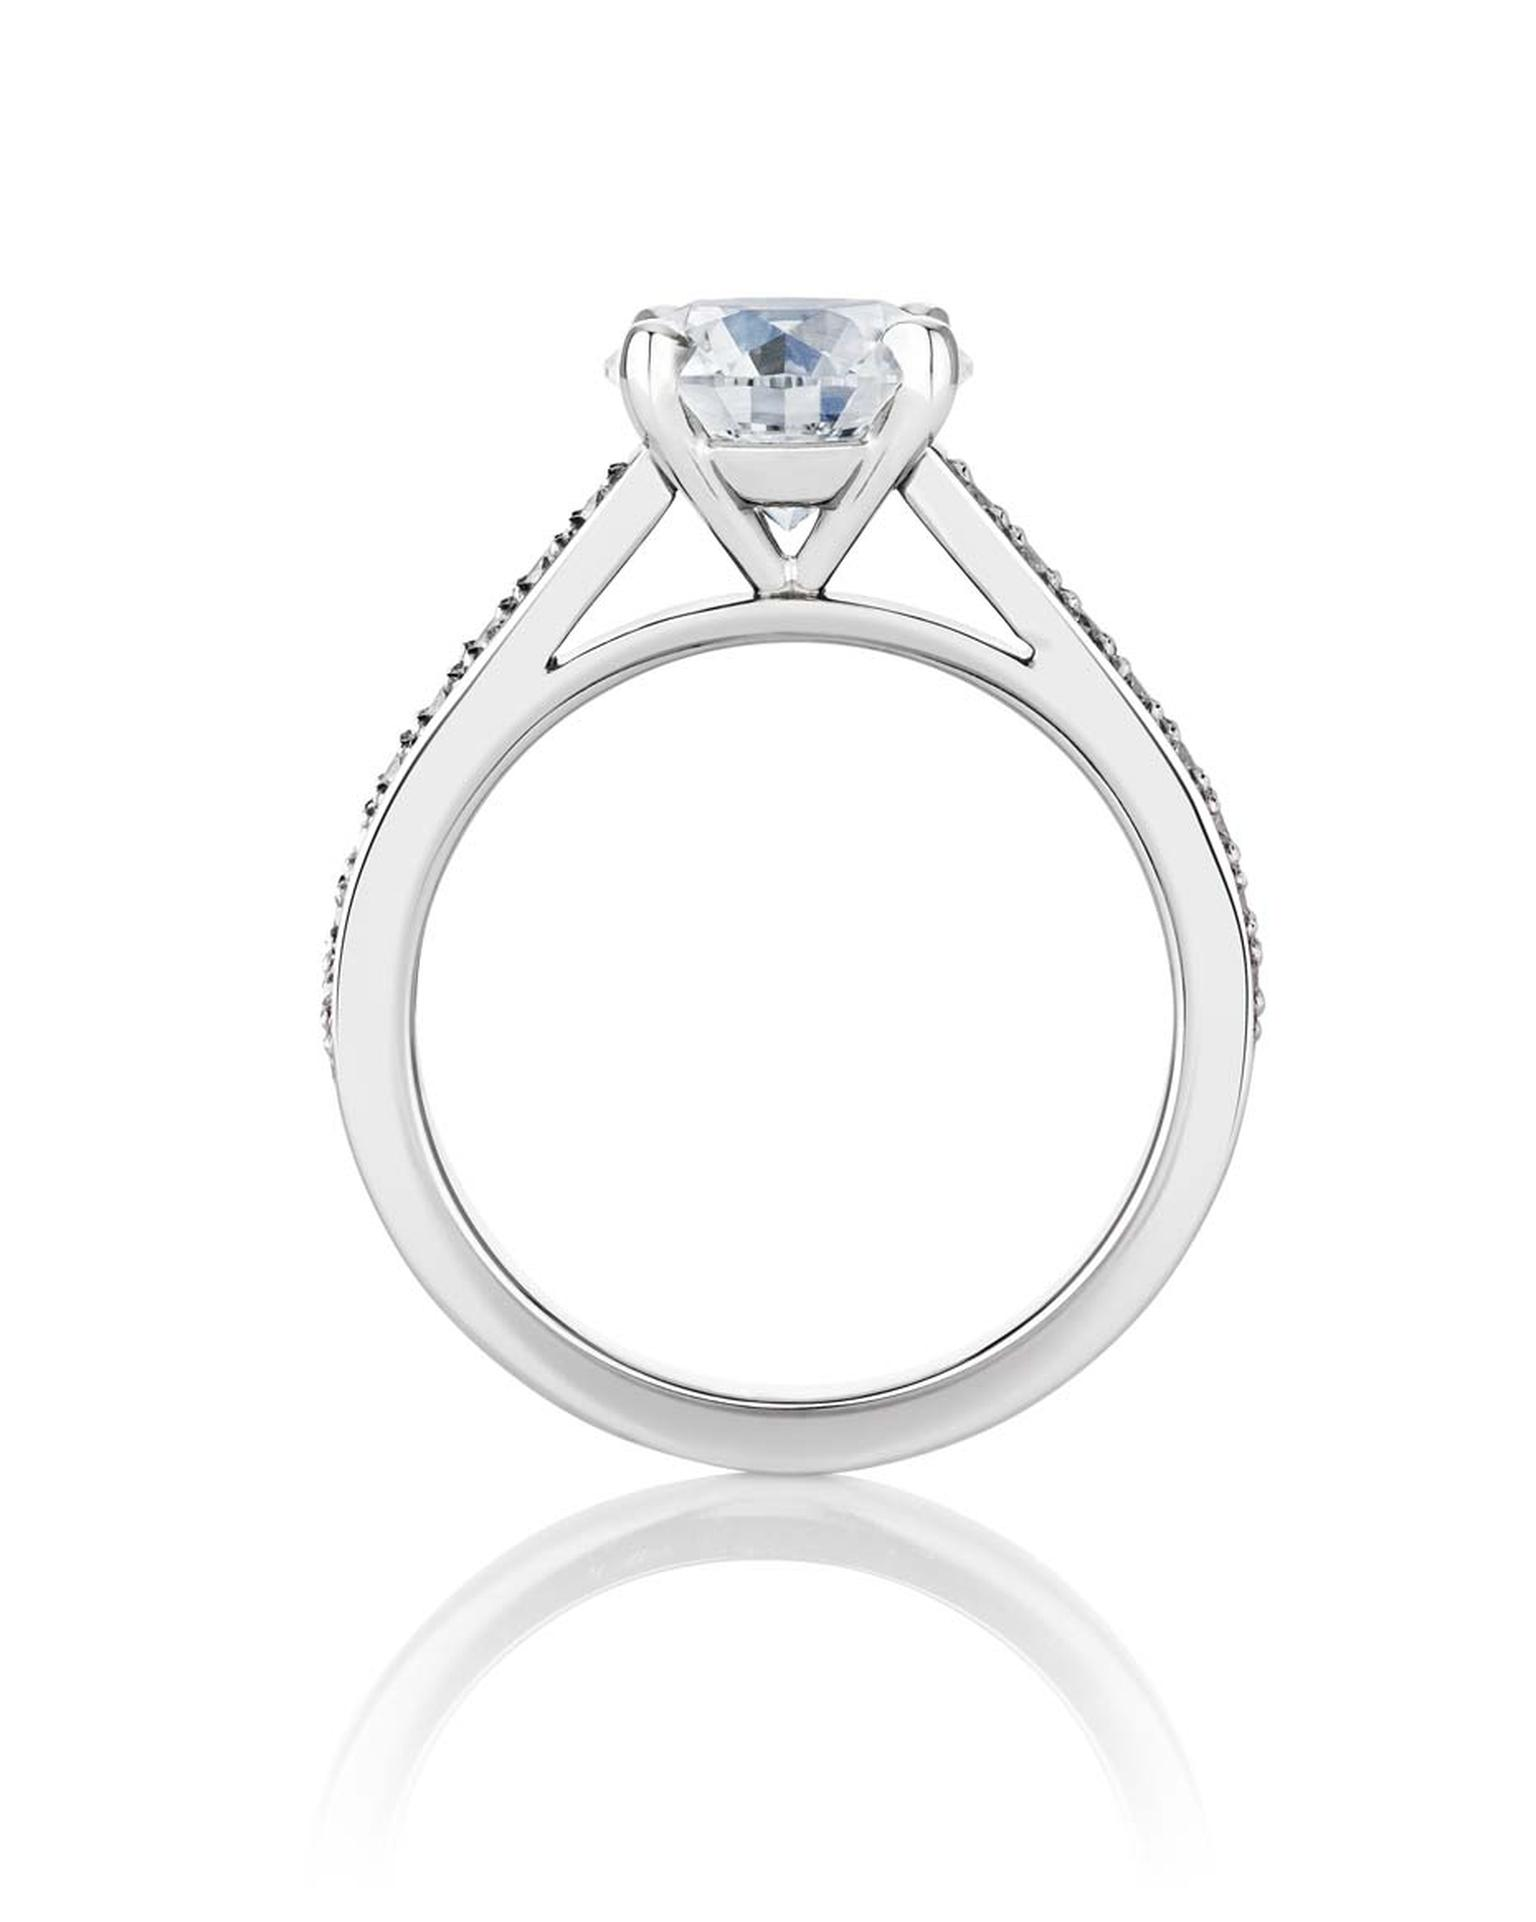 It Sits Alongside The Existing Collection Of De Beers Engagement Rings Which Includes